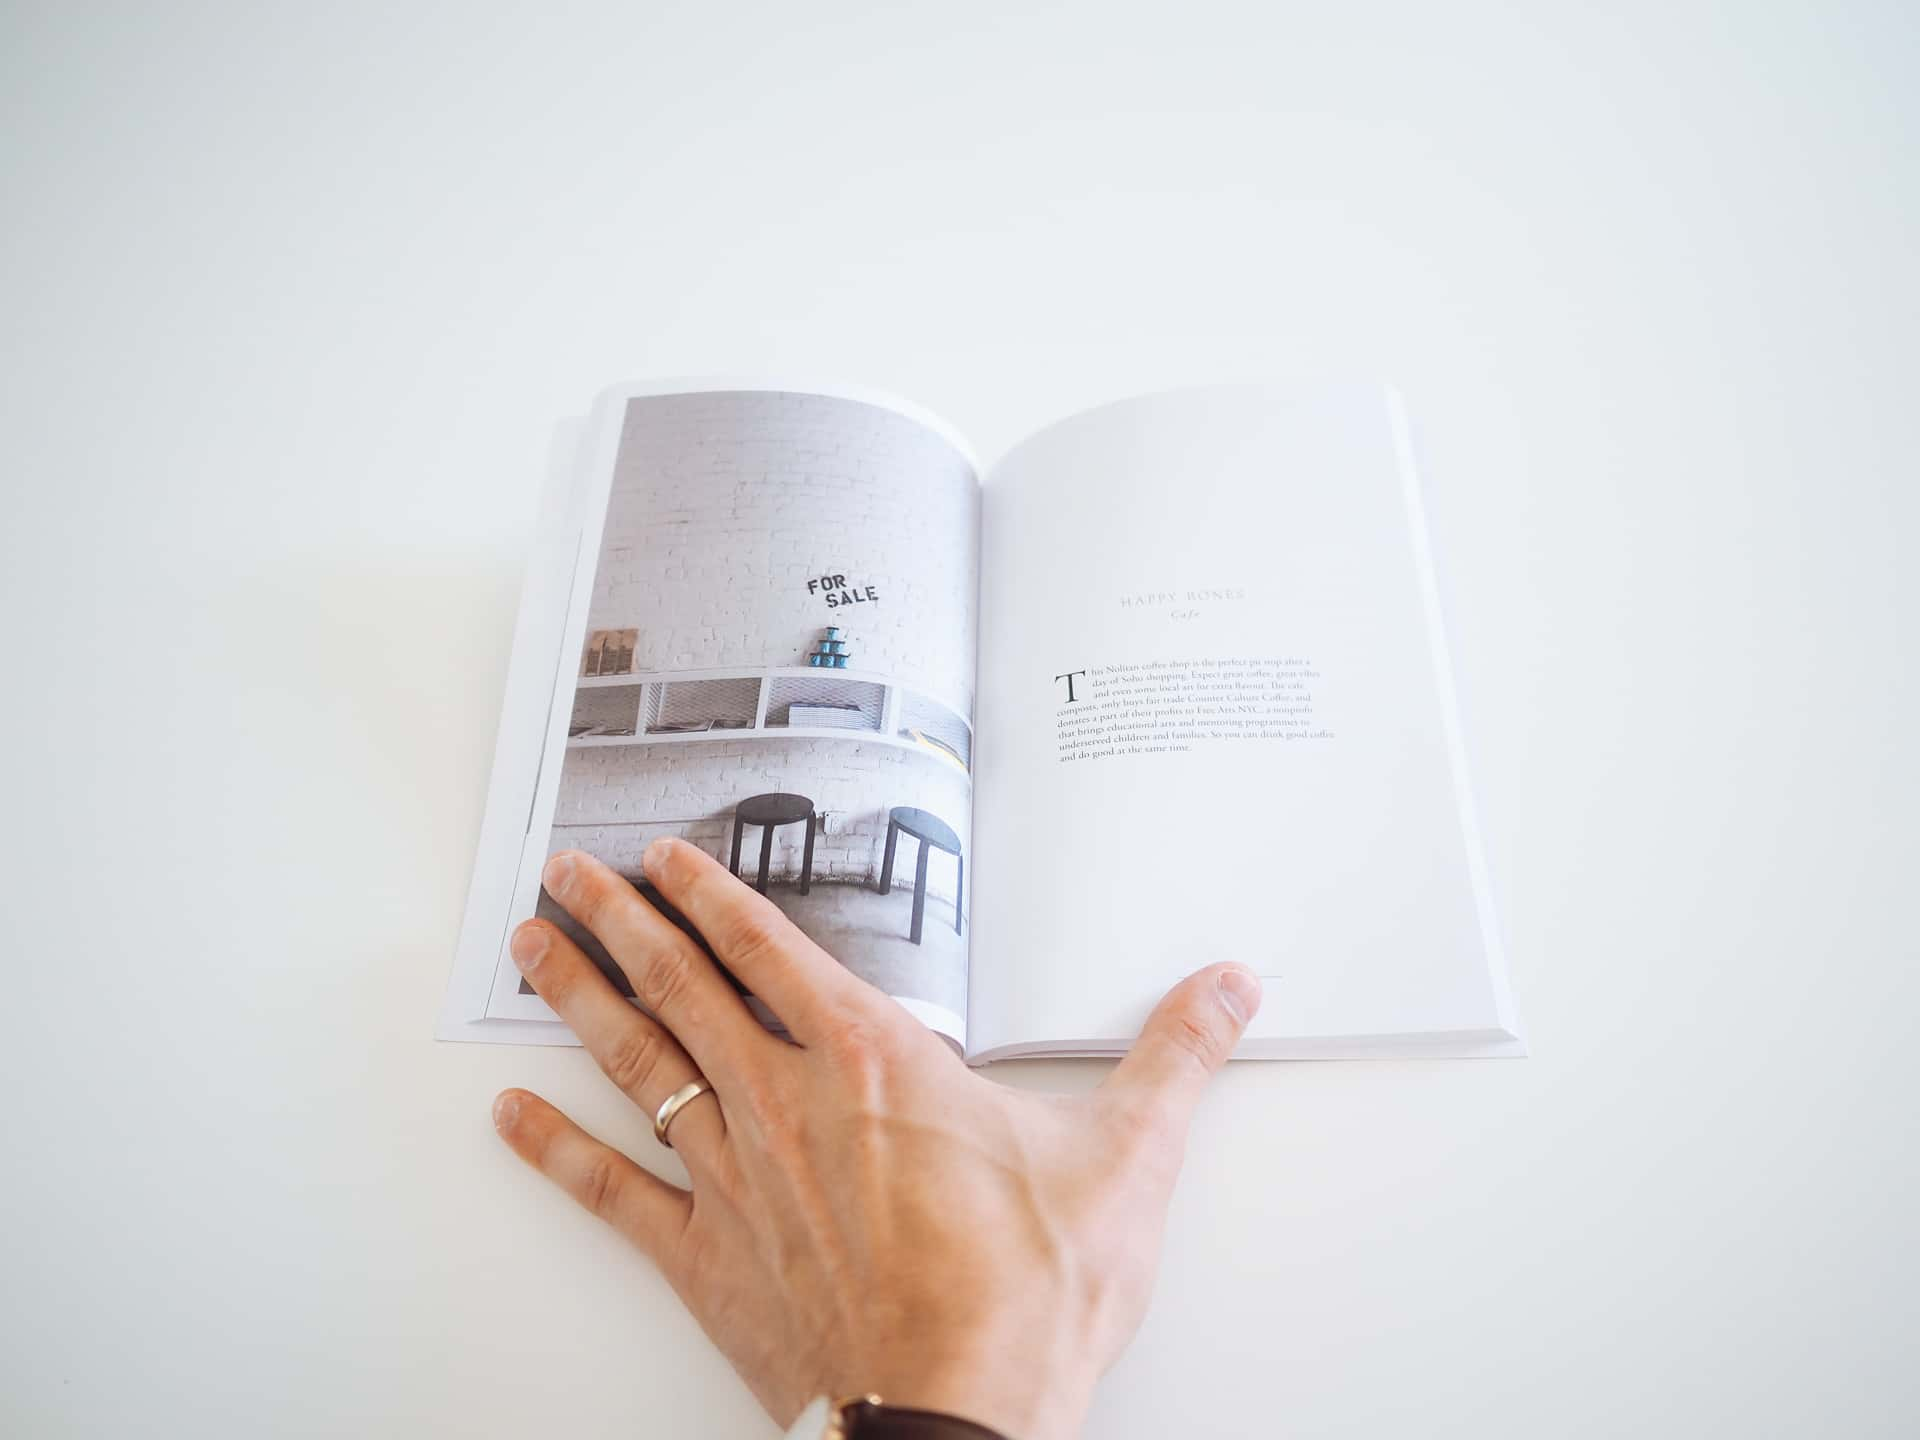 Although not a lay-flat design, the binding is thick and durable. For a travel guide, Guided's design is unprecedented.